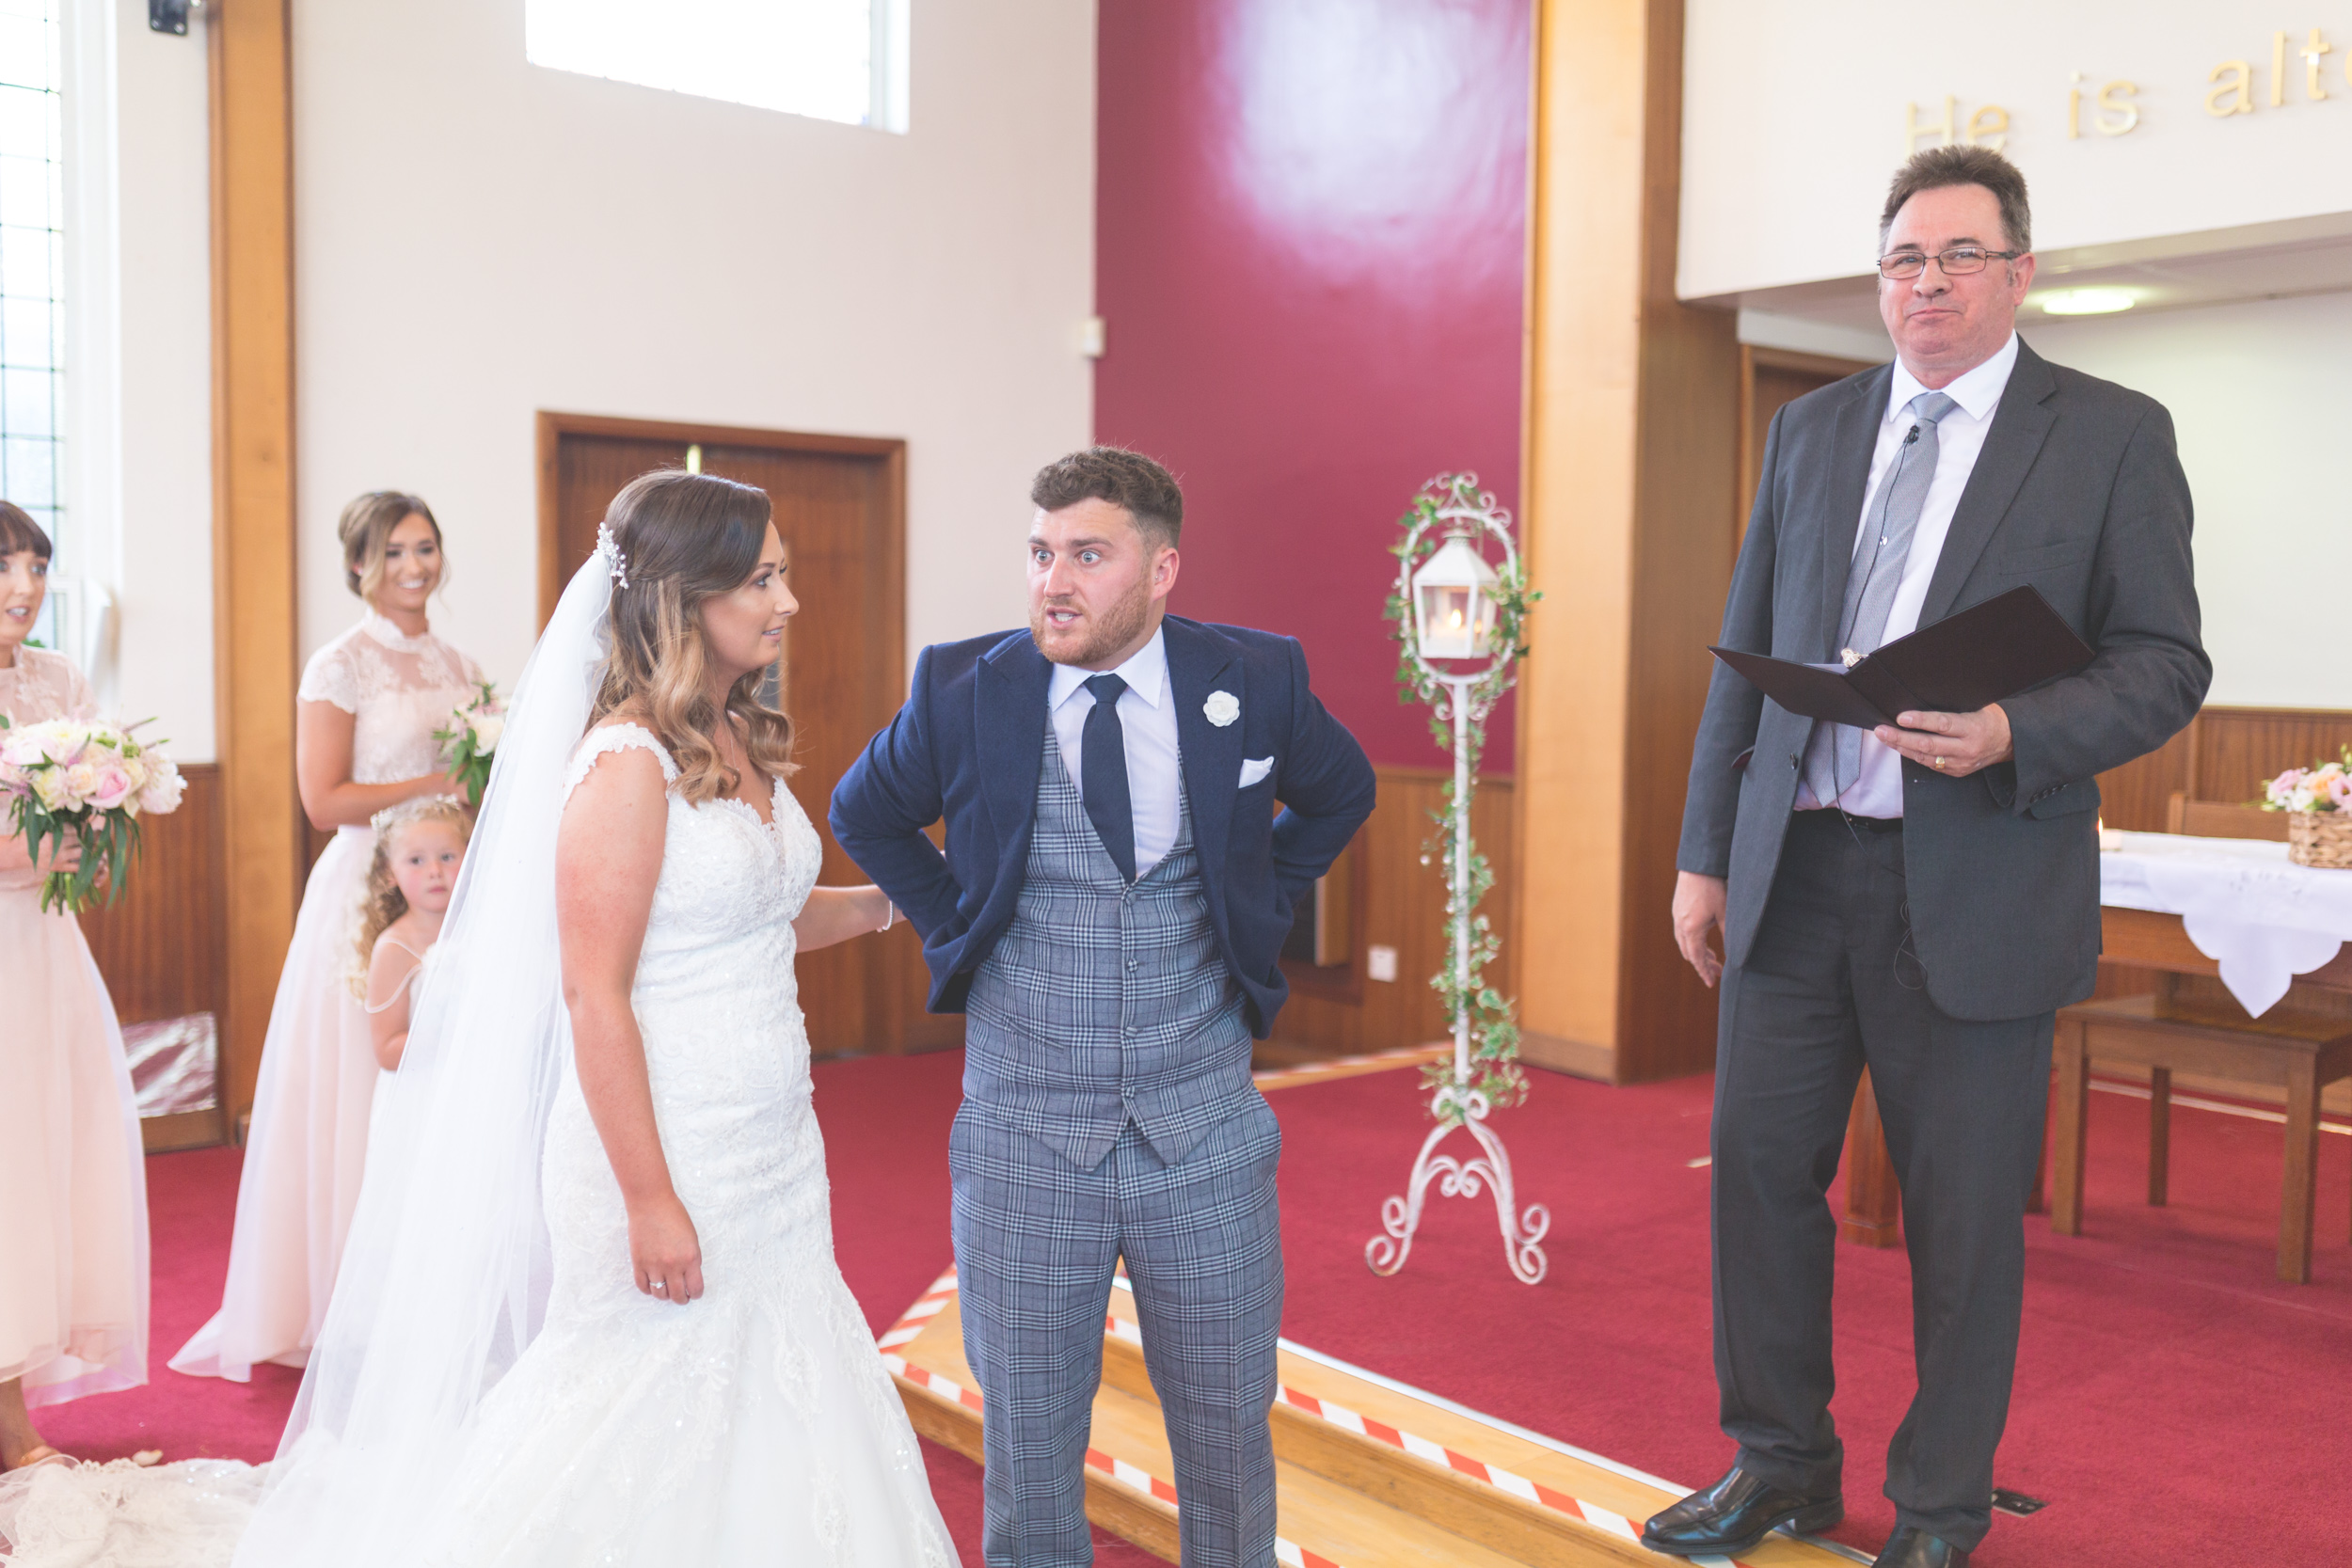 Brian McEwan | Northern Ireland Wedding Photographer | Rebecca & Michael | Ceremony-101.jpg